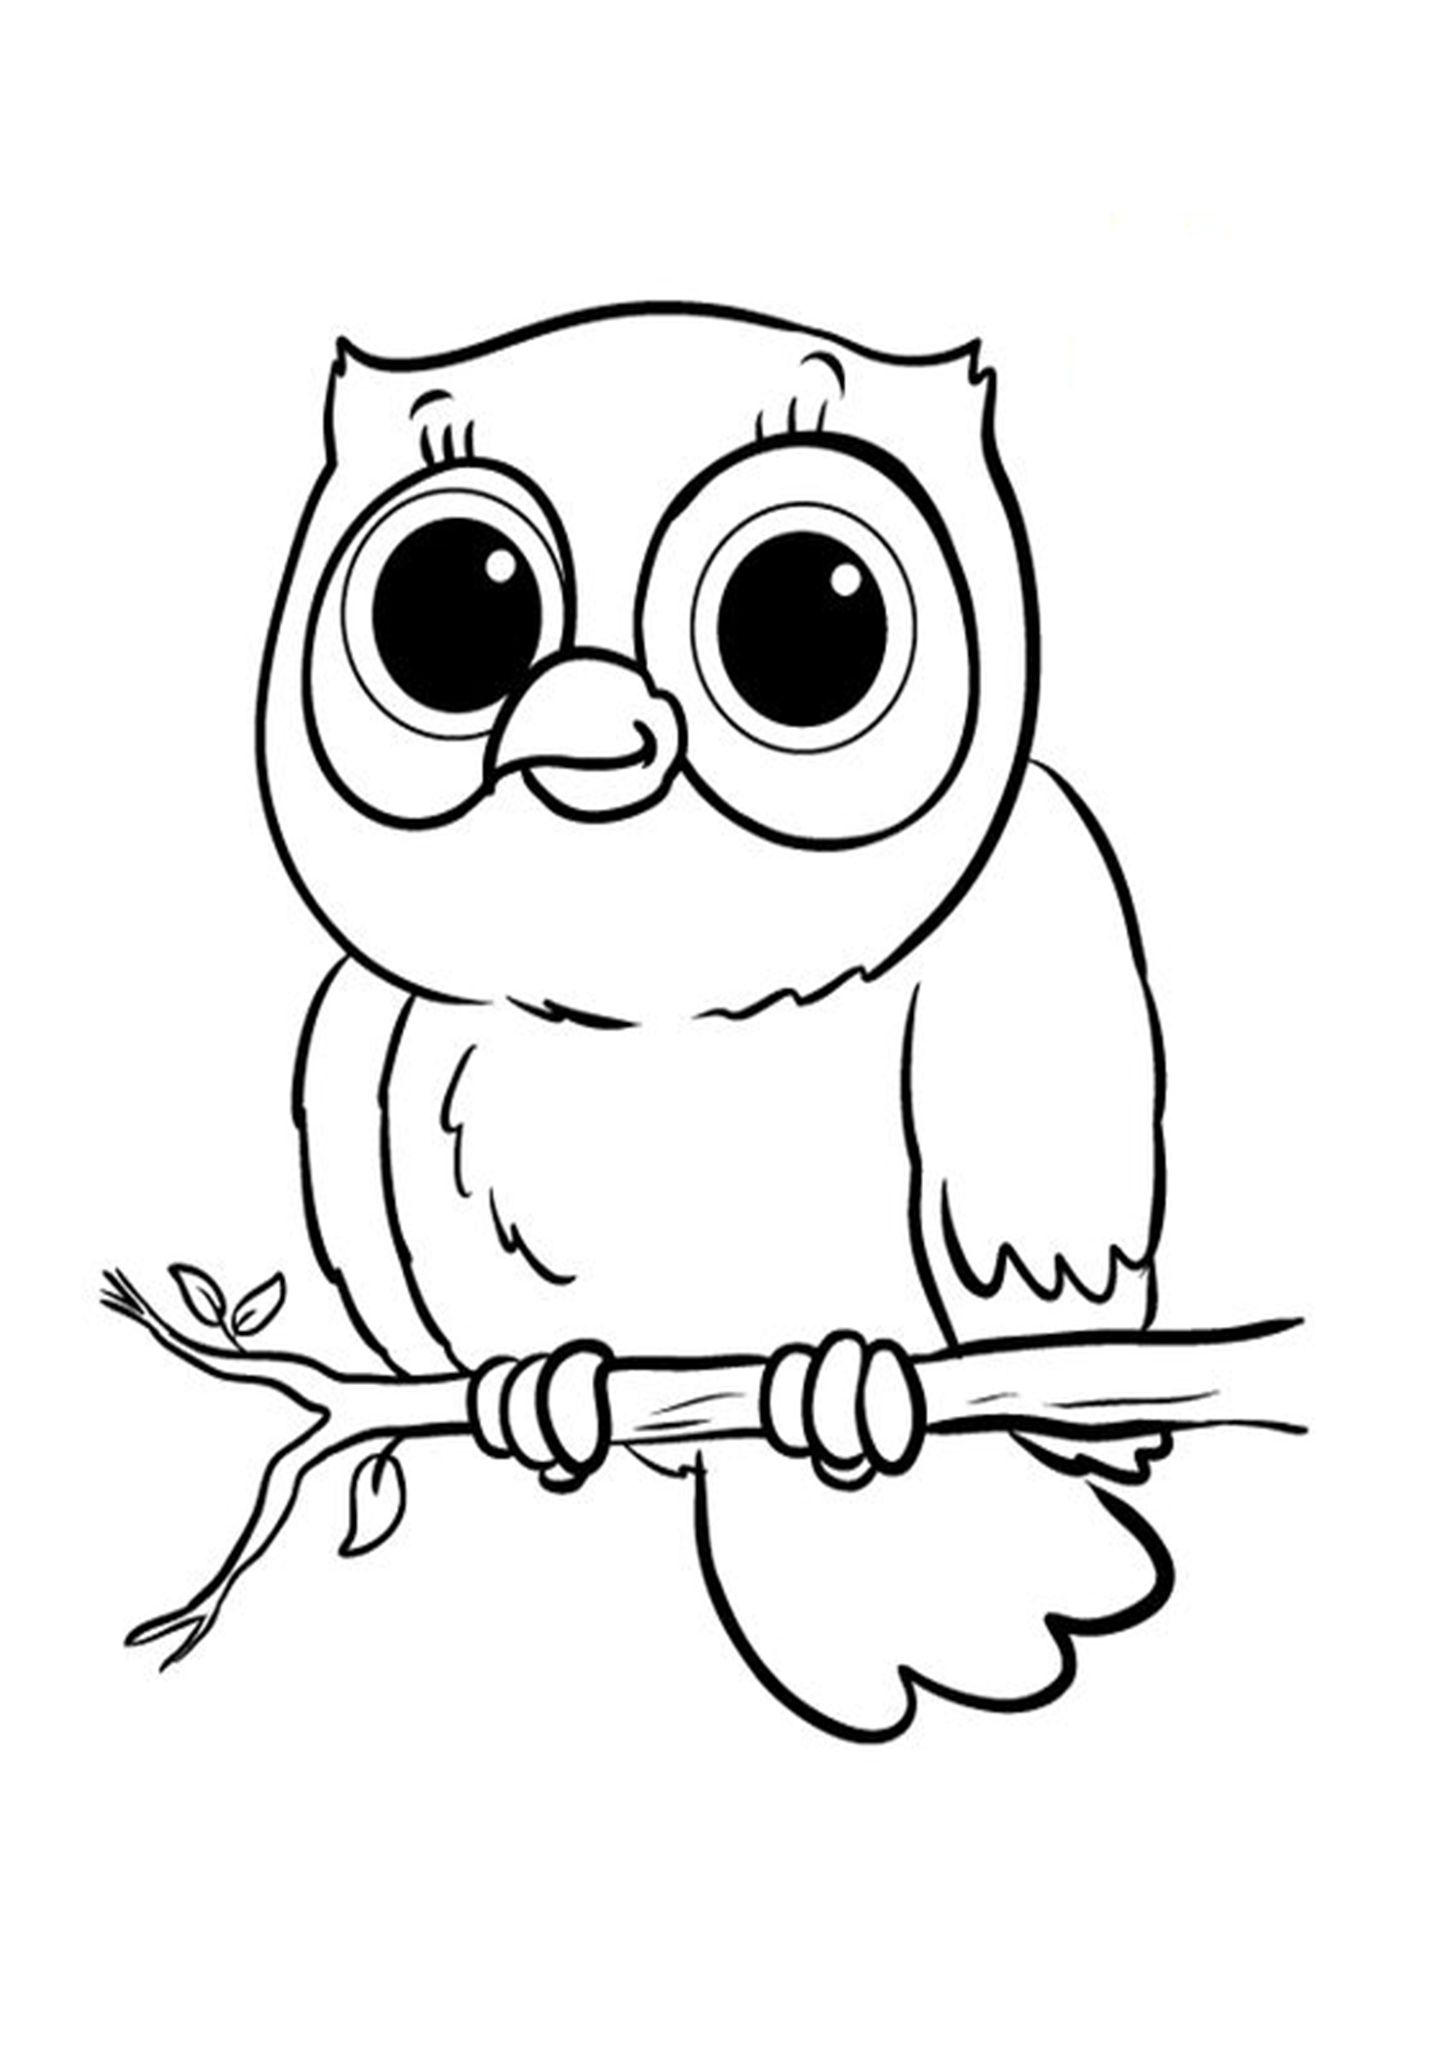 Free Easy To Print Owl Coloring Pages Owl Coloring Pages Animal Coloring Pages Easy Coloring Pages